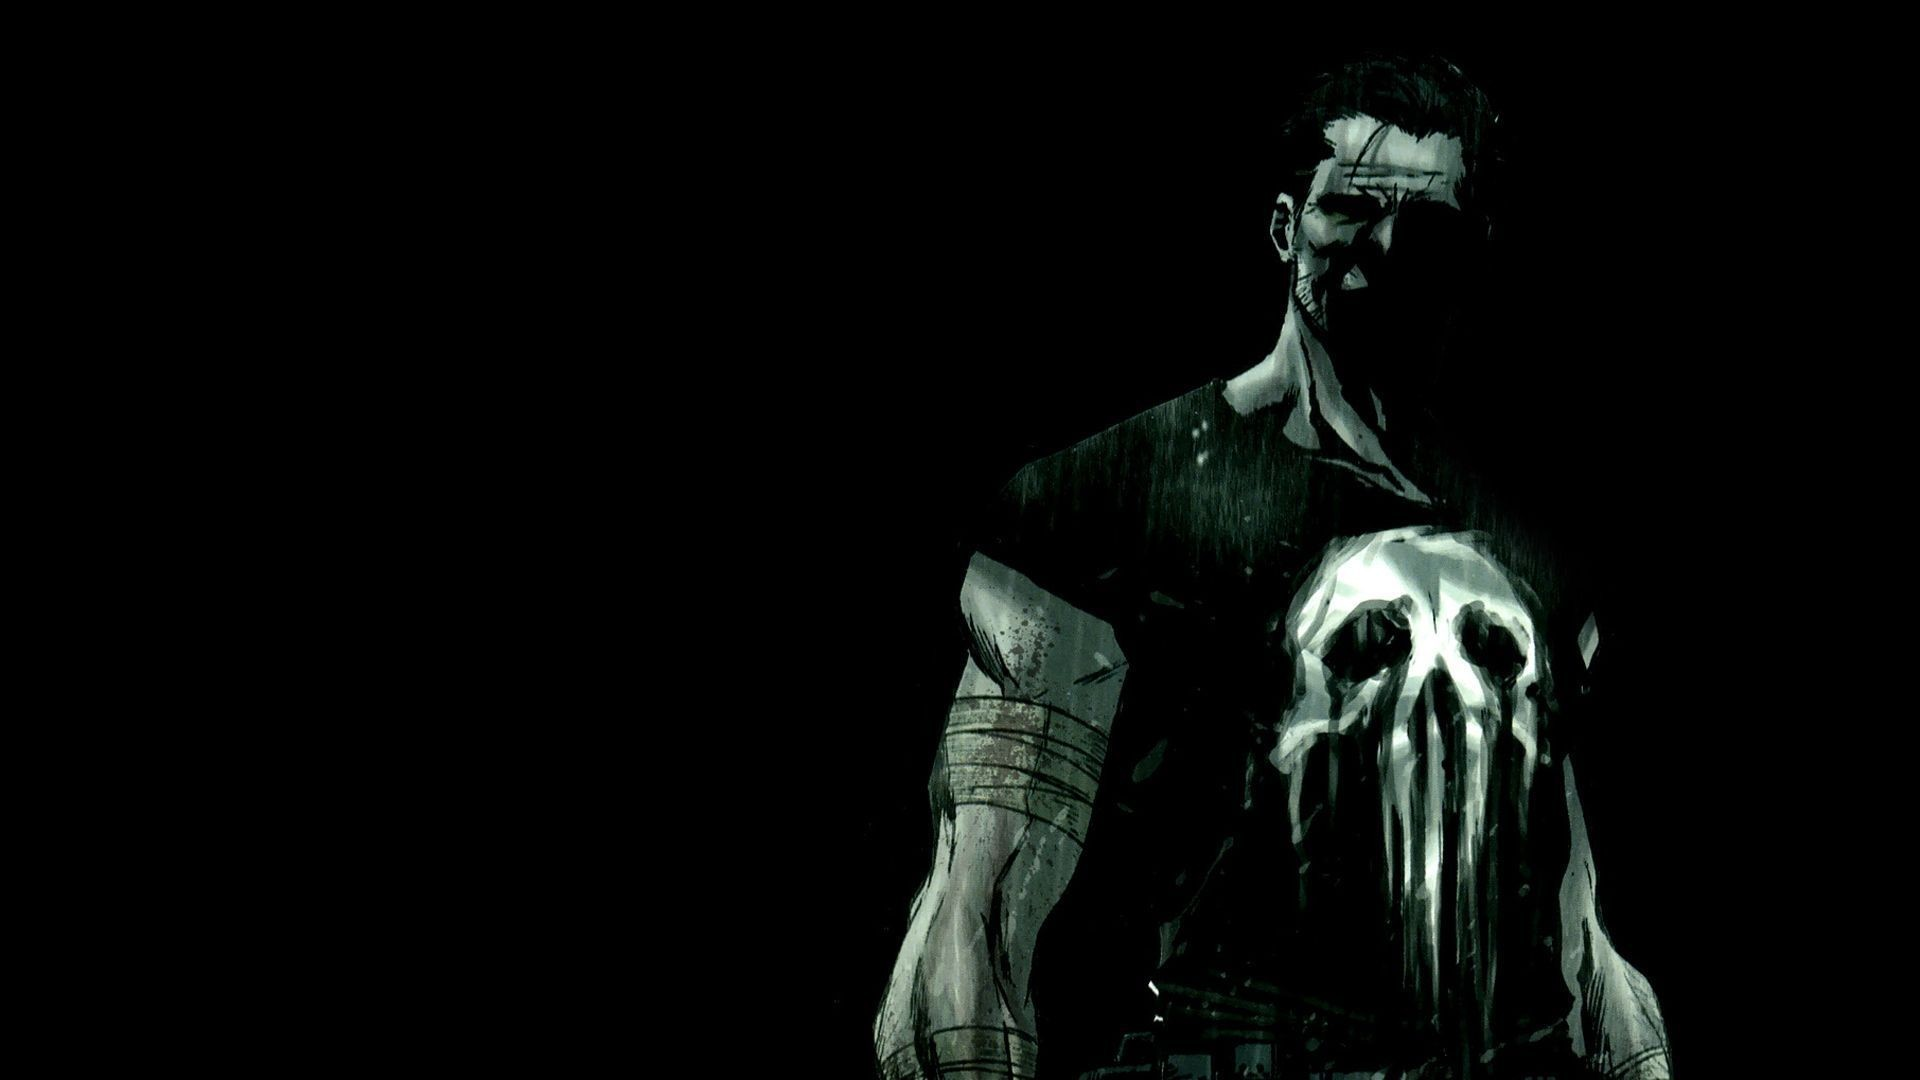 The Punisher HD Wallpapers Backgrounds Wallpaper | HD Wallpapers |  Pinterest | Punisher, Hd wallpaper and Wallpaper